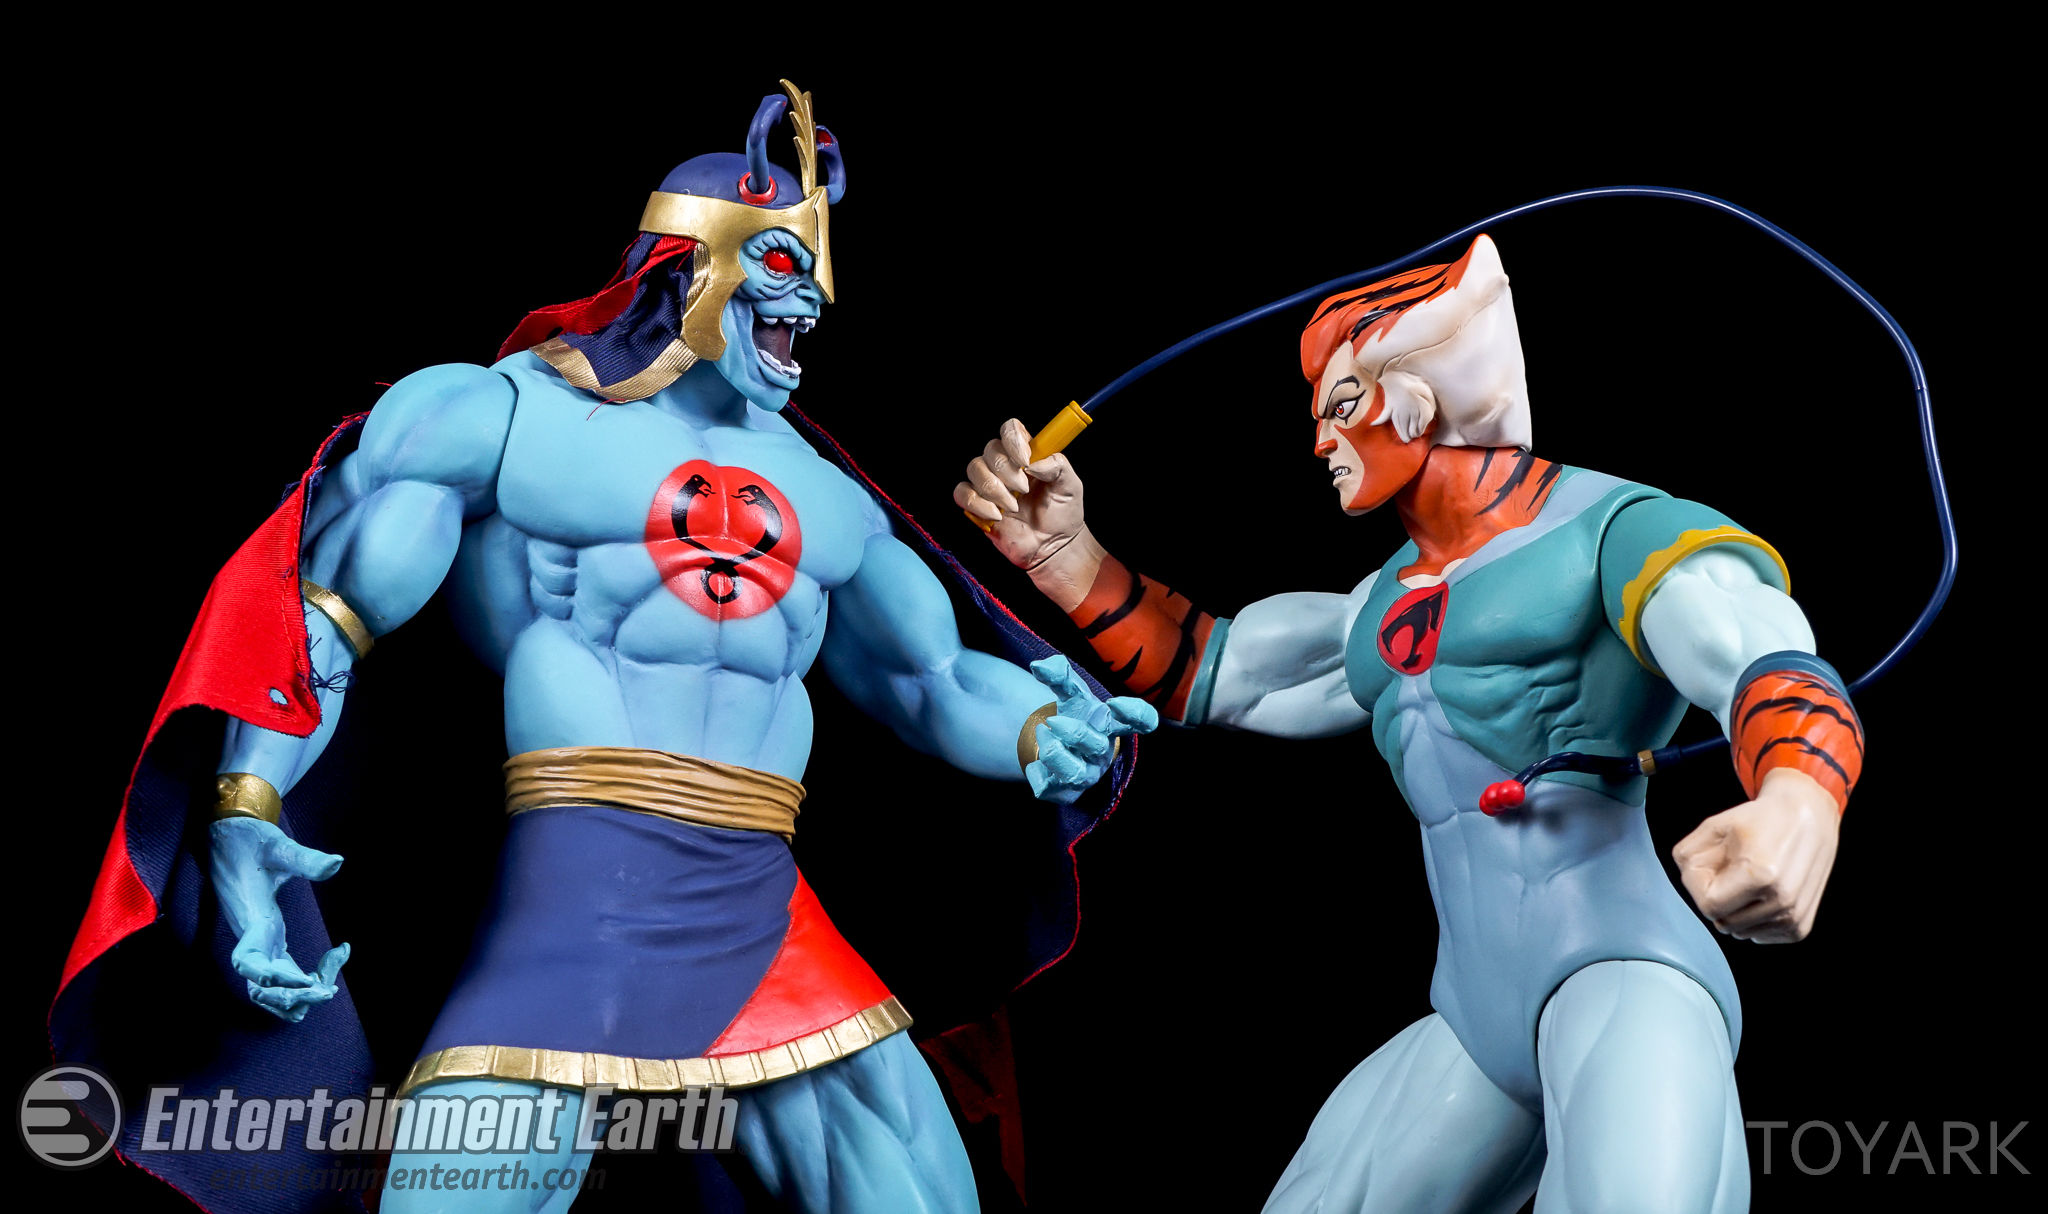 http://news.toyark.com/wp-content/uploads/sites/4/2016/05/Mezco-Thundercats-Tygra-040.jpg